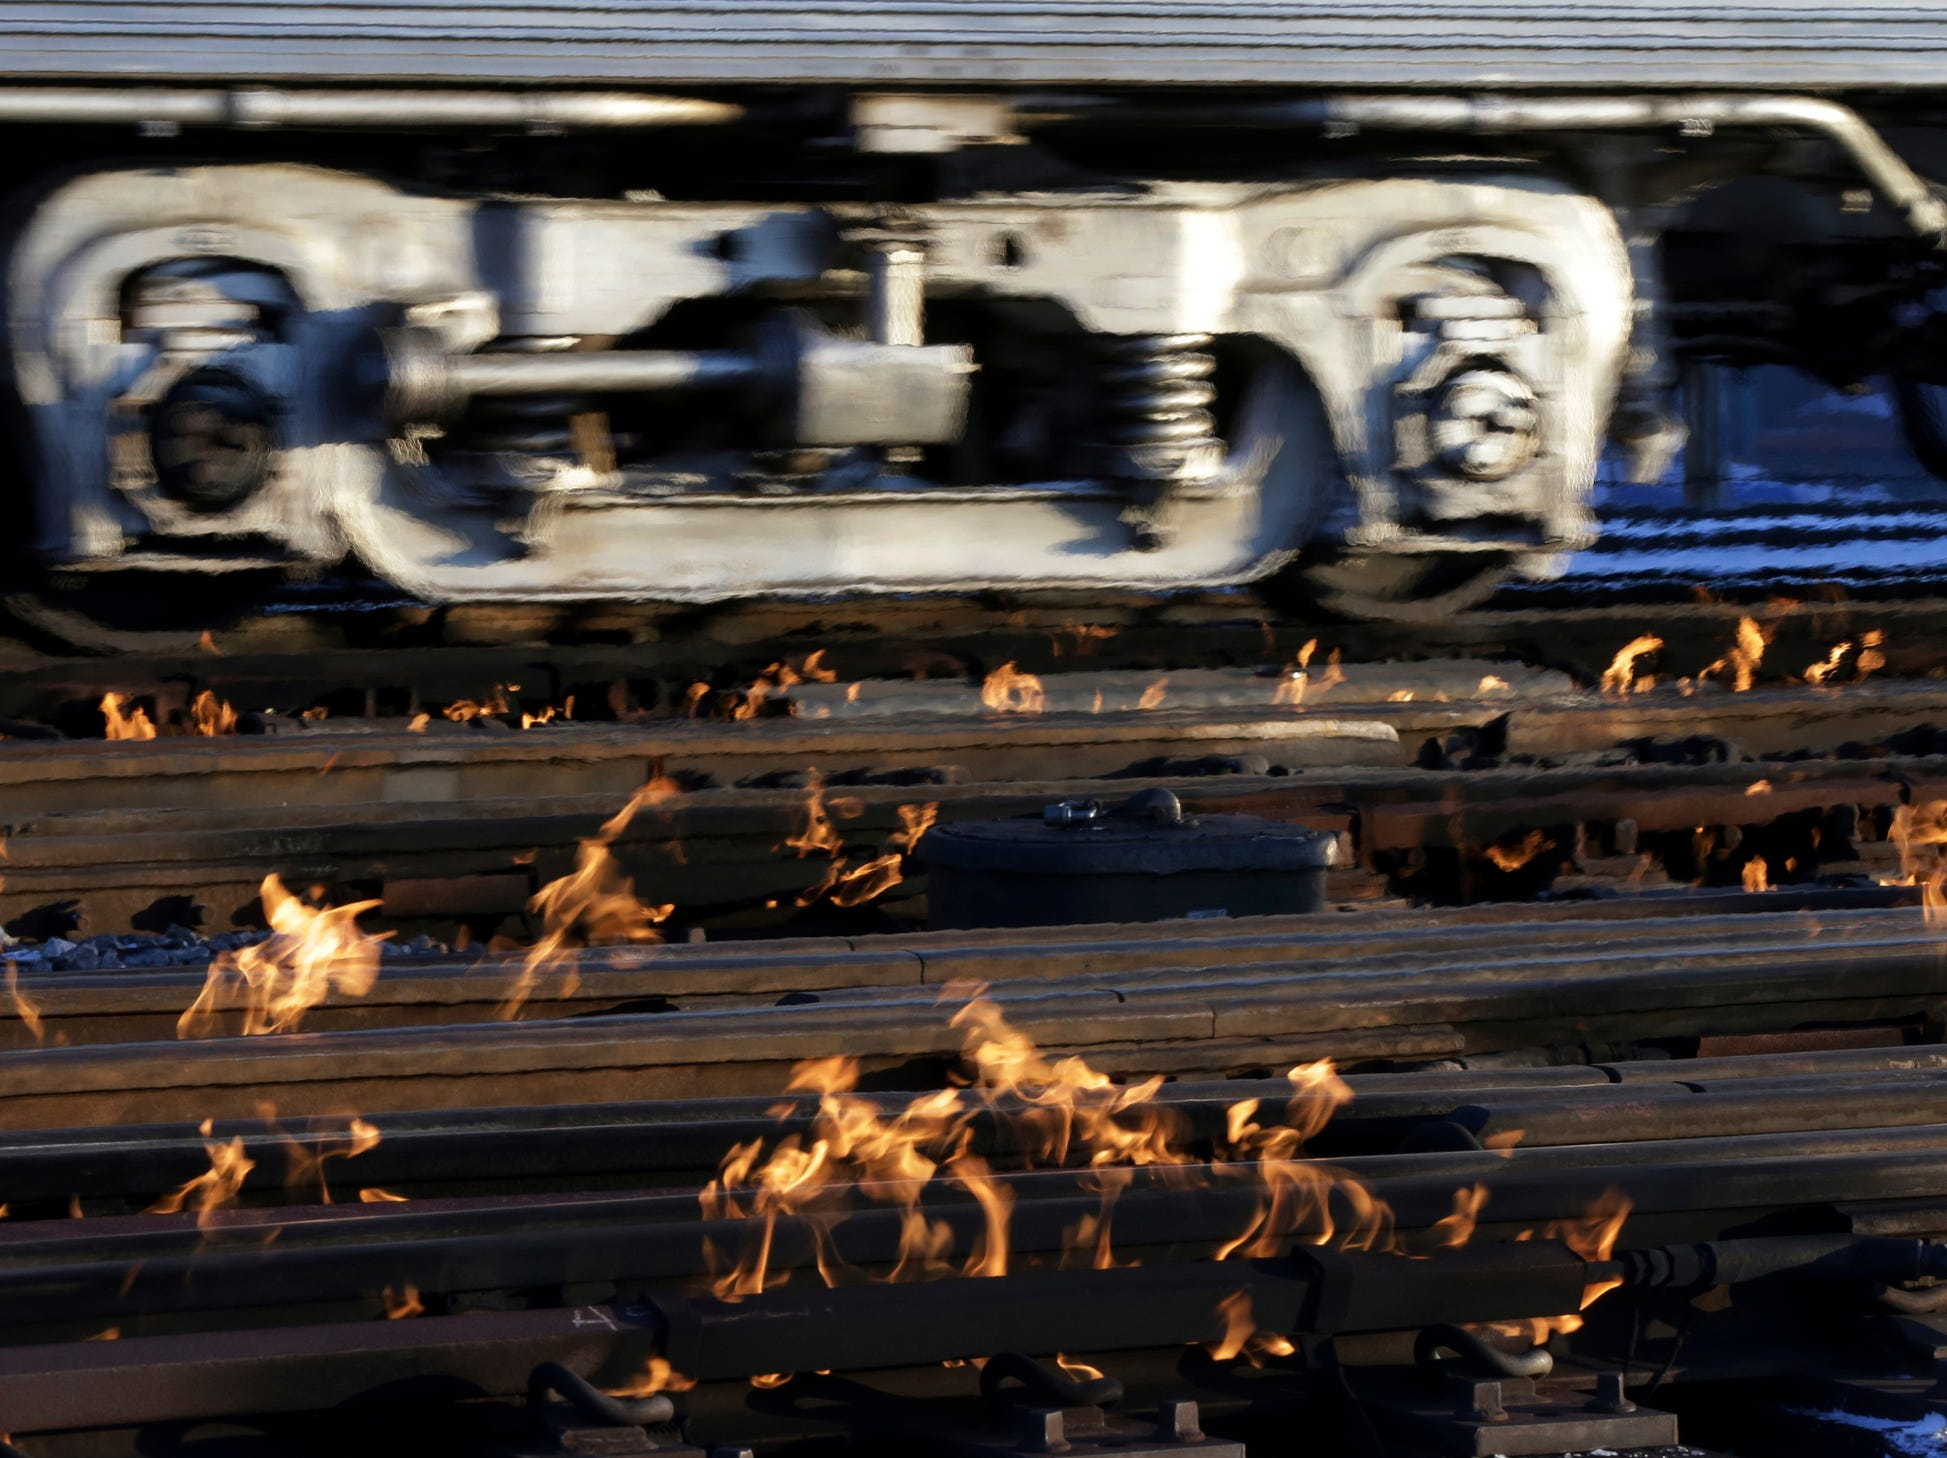 A Metra train moves southbound to downtown Chicago as the gas-fired switch heater on the rails keeps the ice and snow off the switches near Metra Western Avenue station in Chicago, Tuesday, Jan. 29, 2019. Forecasters warn that the freezing weather Tuesday could be life-threatening.